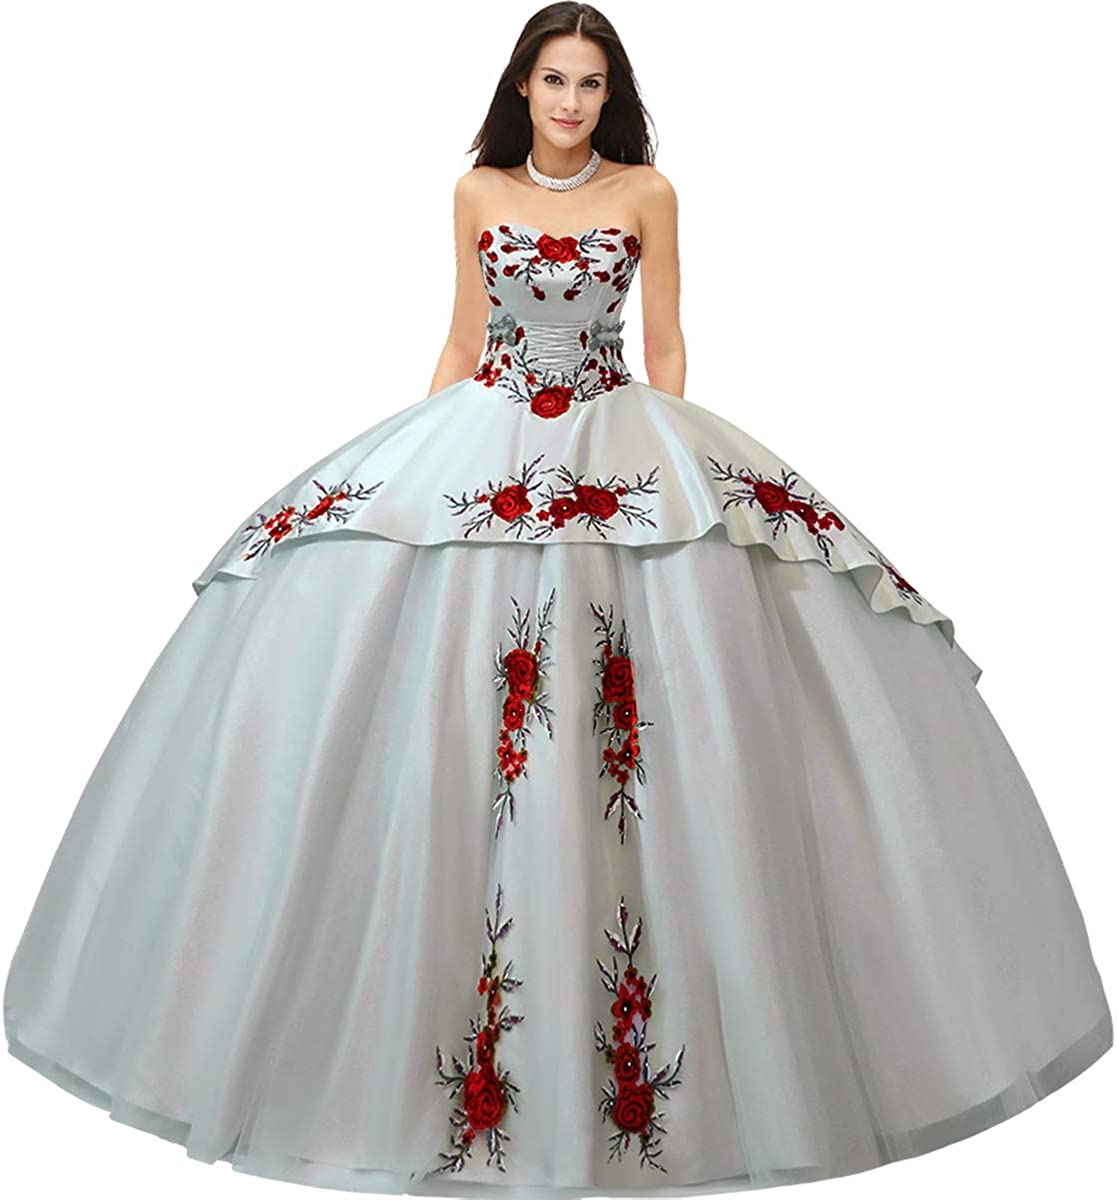 Max 90% OFF Medallions Accented Basque Mexican Charro Dress with Quinceanera Ranking TOP4